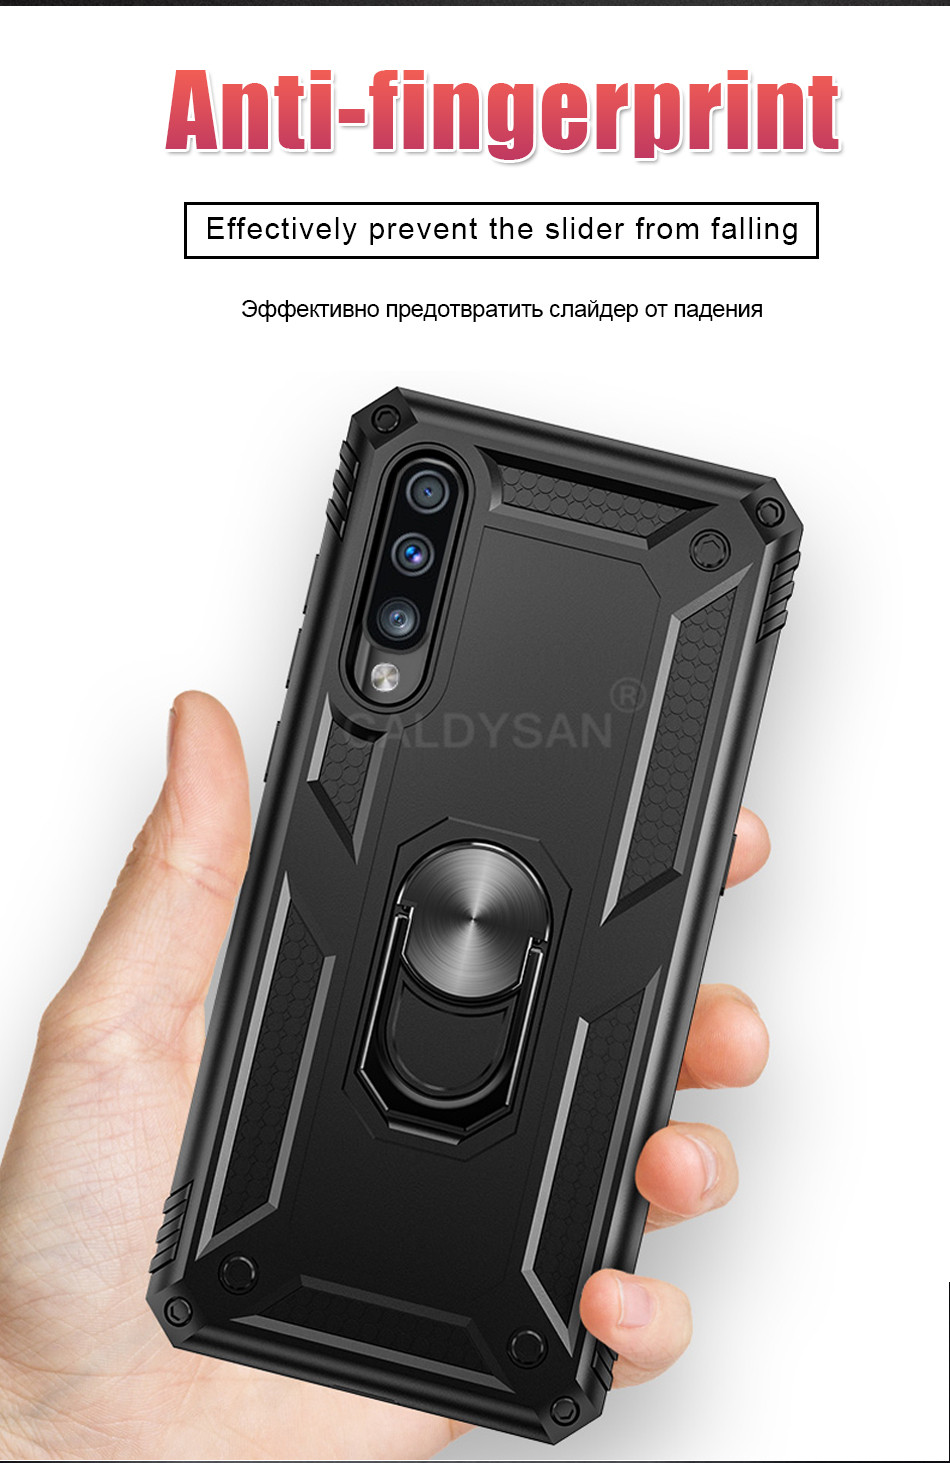 HTB1ZbK1cCWD3KVjSZSgq6ACxVXaz - Luxury Armor Shockproof Case For Samsung Galaxy A50 A30 A51 A71 S20 Ultra S9 S10 S8 Note 8 9 10 Plus Car Holder Ring Case Cover